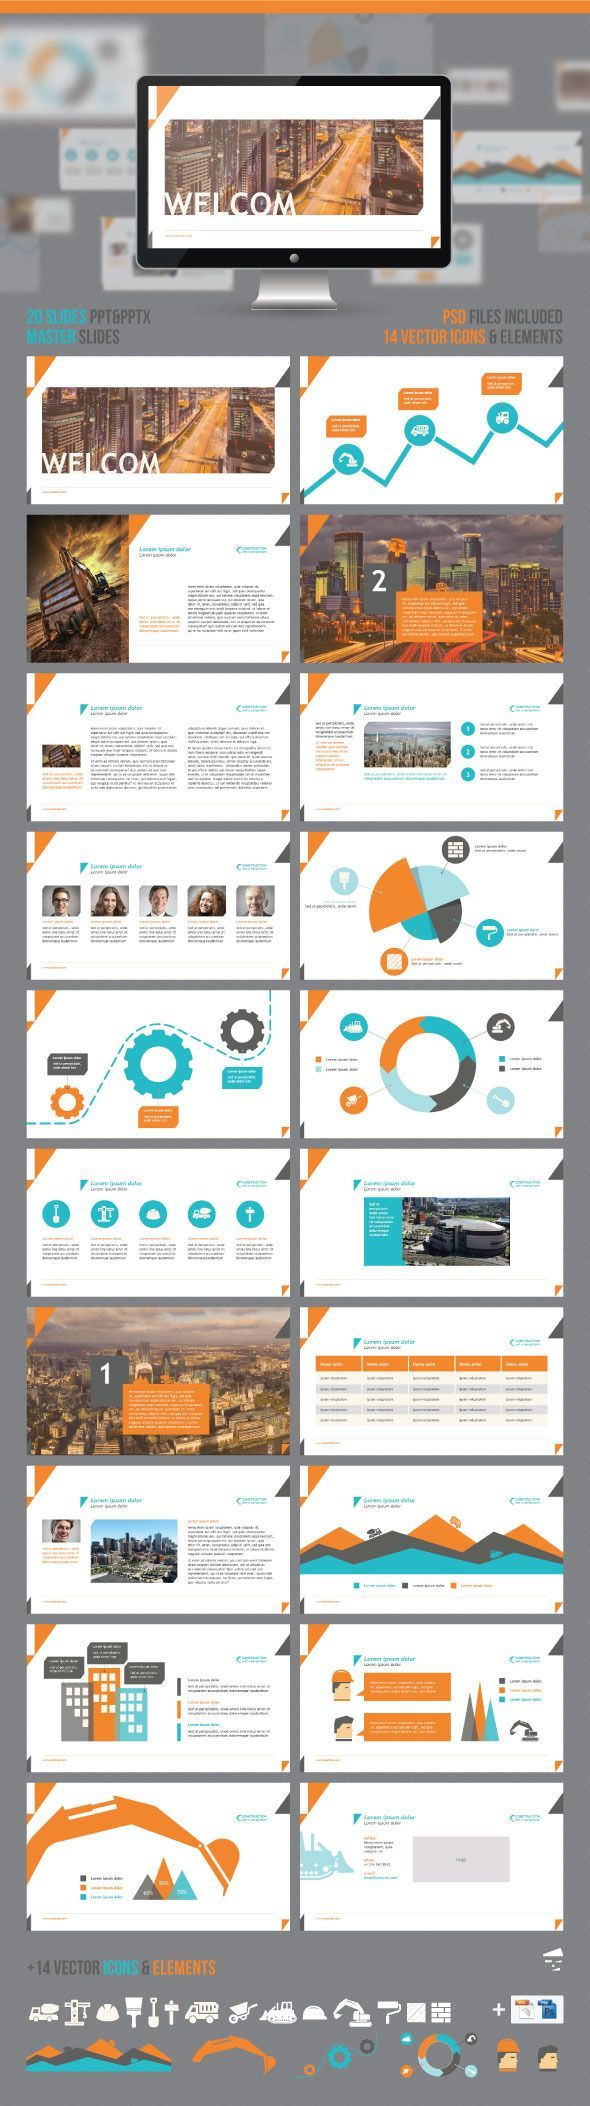 Construction PowerPoint Presentation - Business PowerPoint Templates. If you like UX, design, or design thinking, check out theuxblog.com